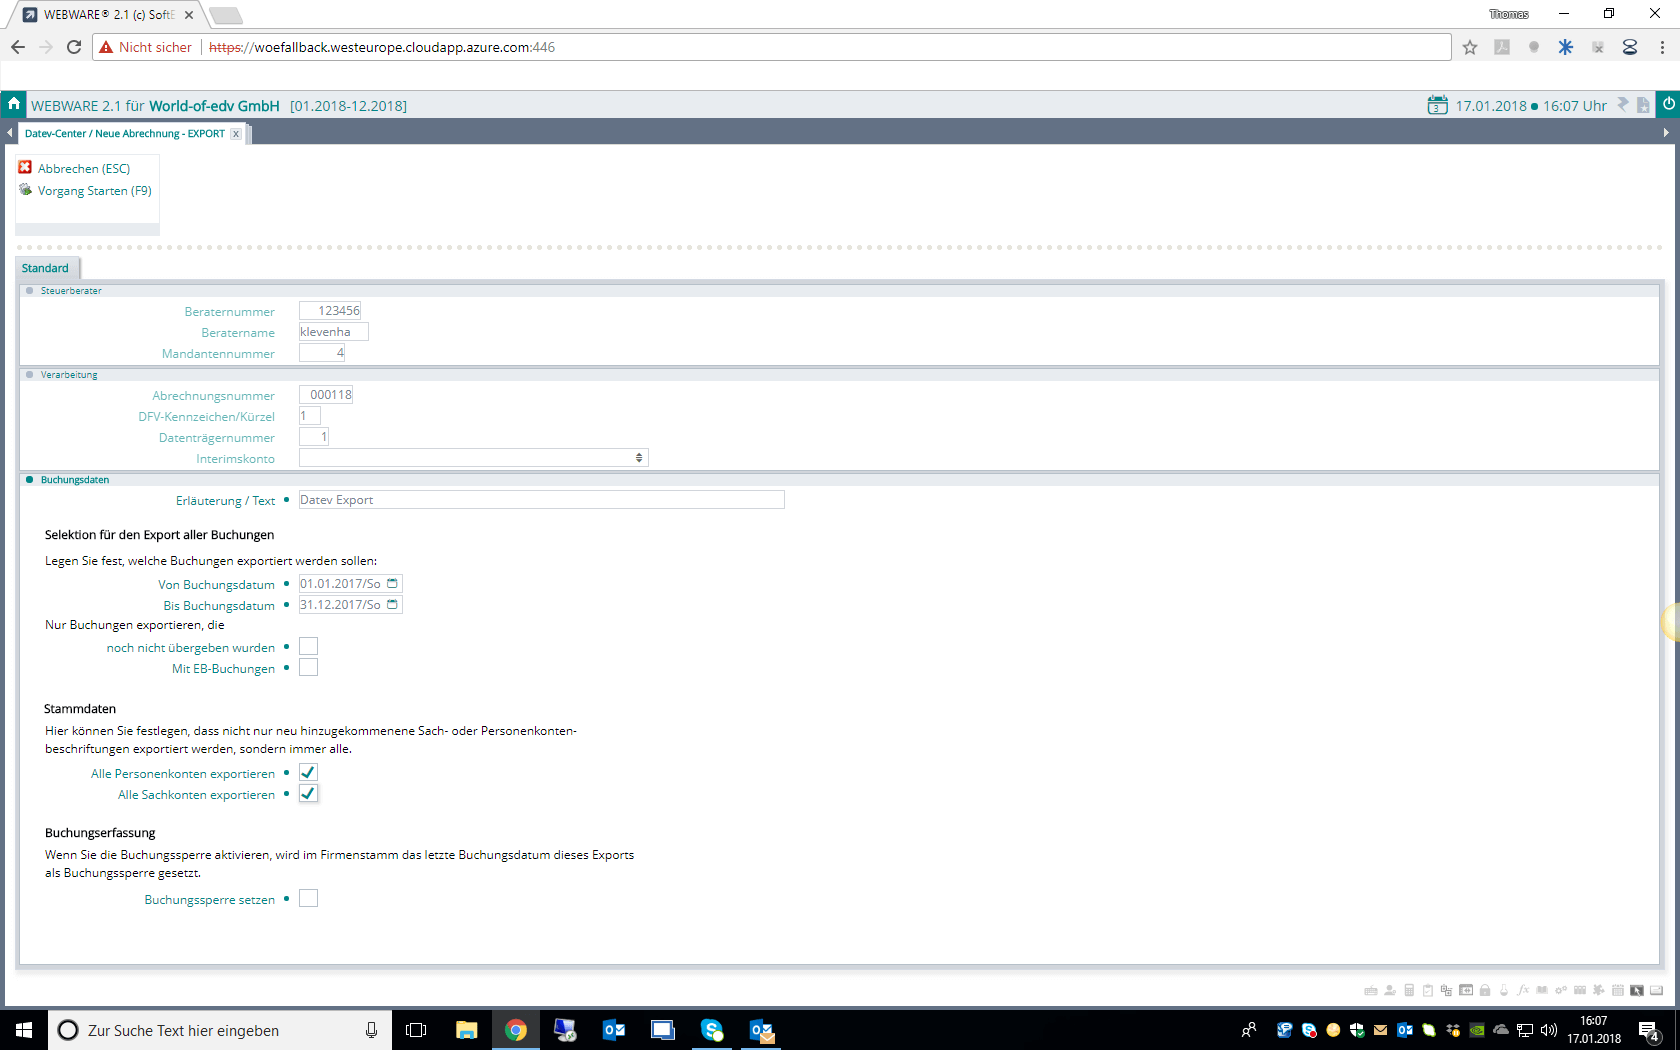 Screenshot Datev in der WEBWARE